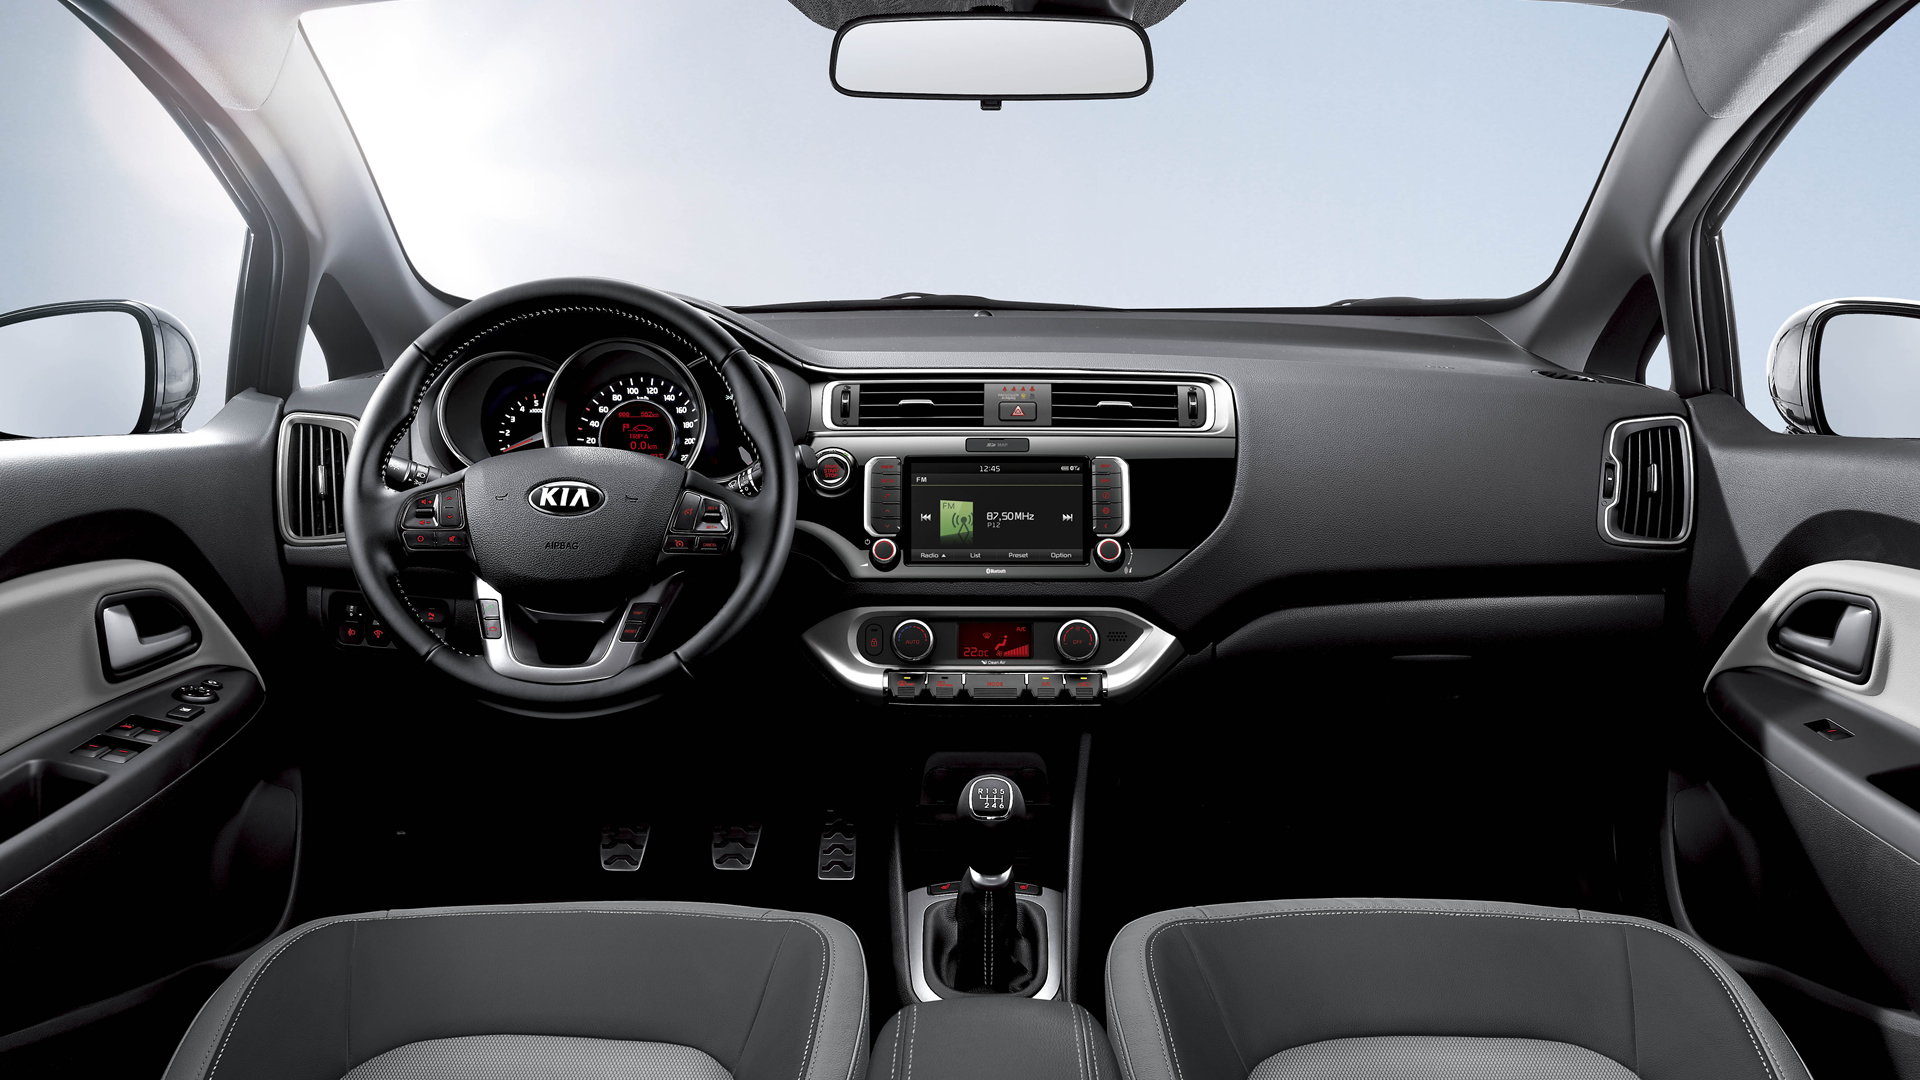 superb-design-of-the-black-seats-ideas-with-silver-accents-ideas-with-black-steering-wheels-as-the-kia-rio-2015-interior